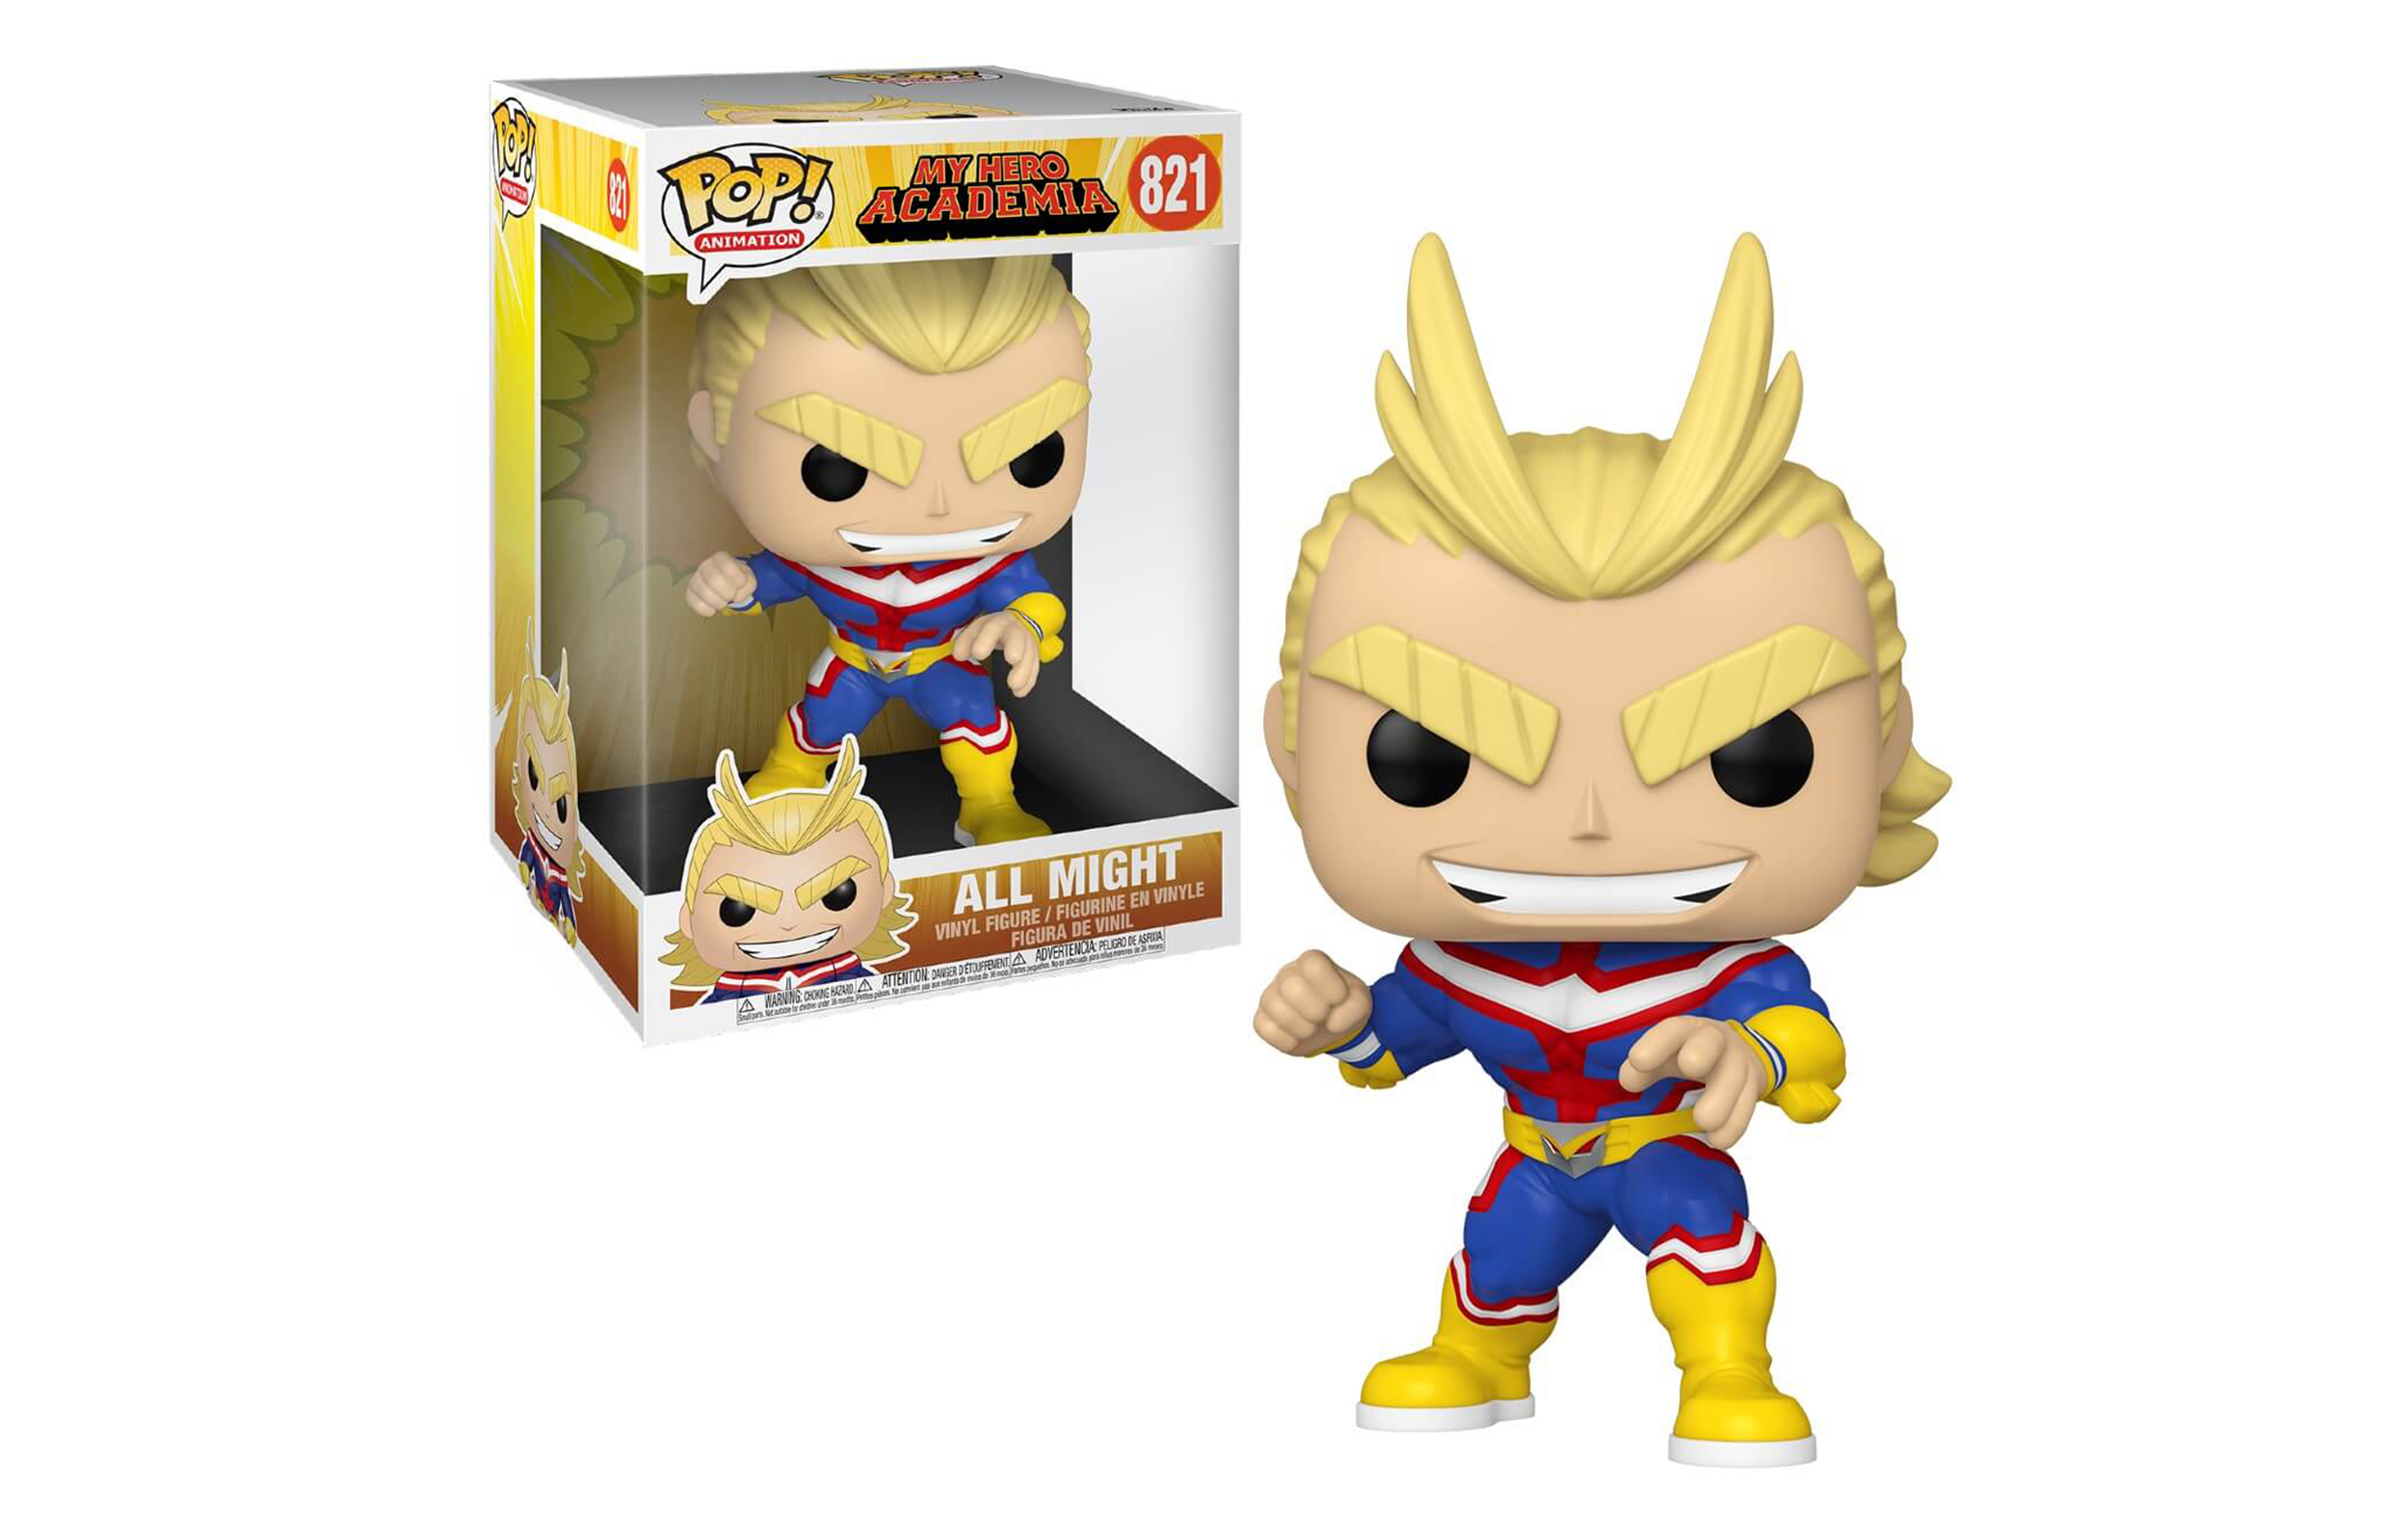 "My Hero Academia All Might 10"" 821 Funko POP Vinyl Figure"